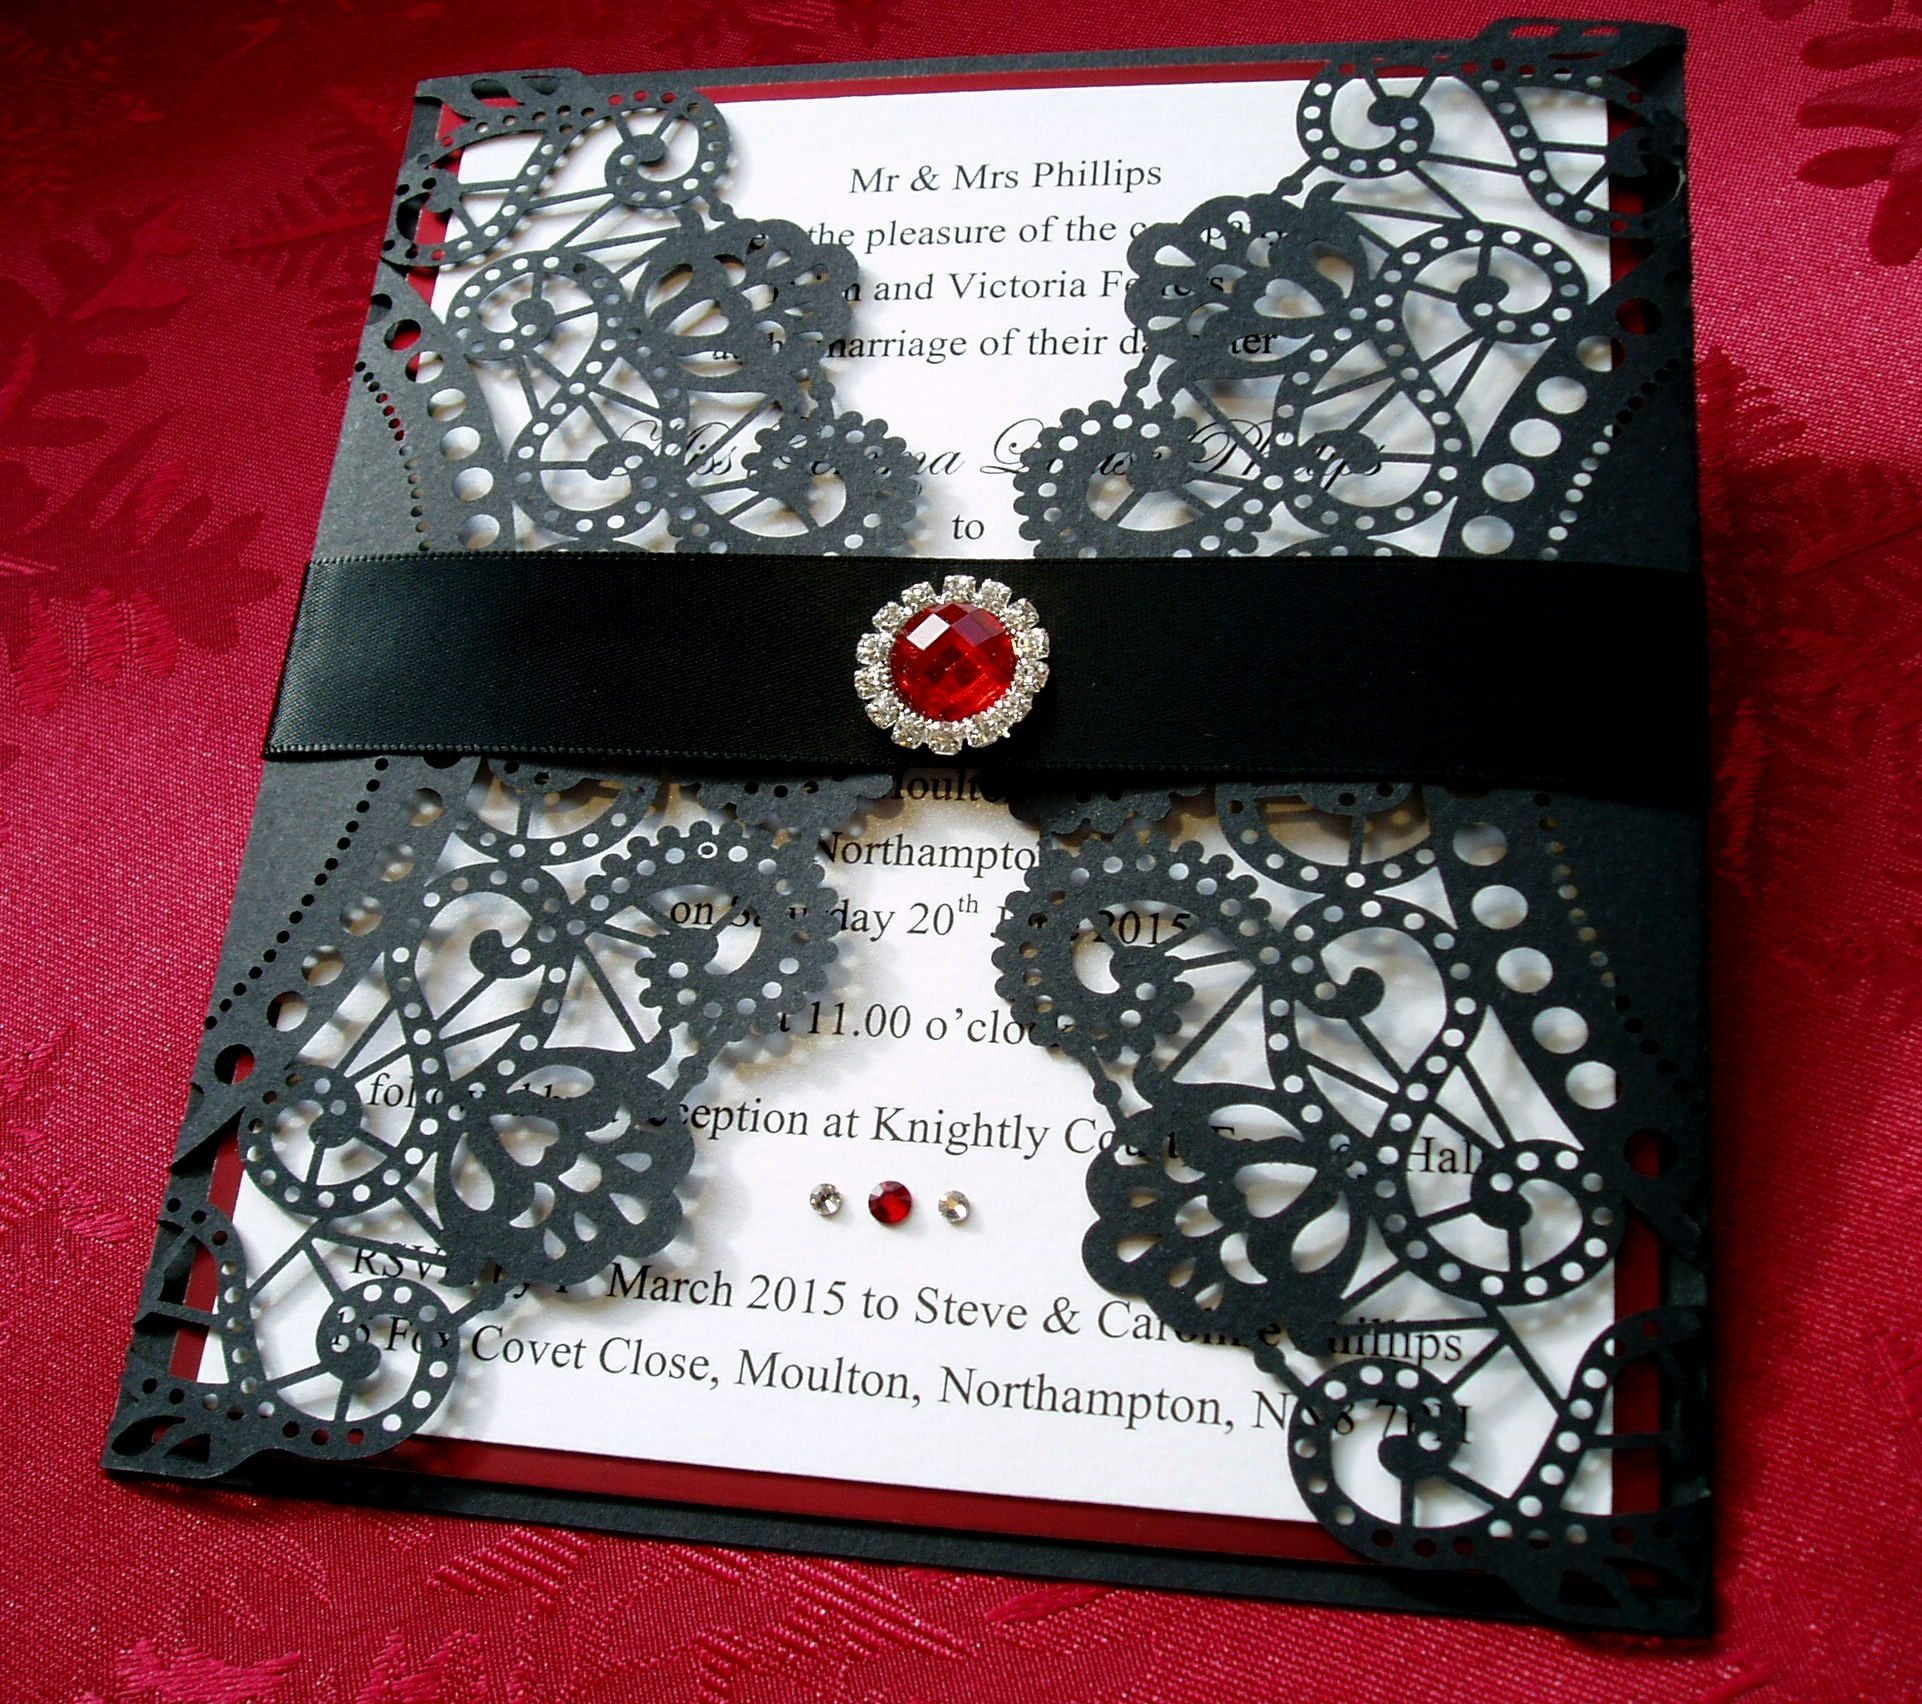 masquerade wedding invitations Gothic Style Wedding Invitation in Black and Red